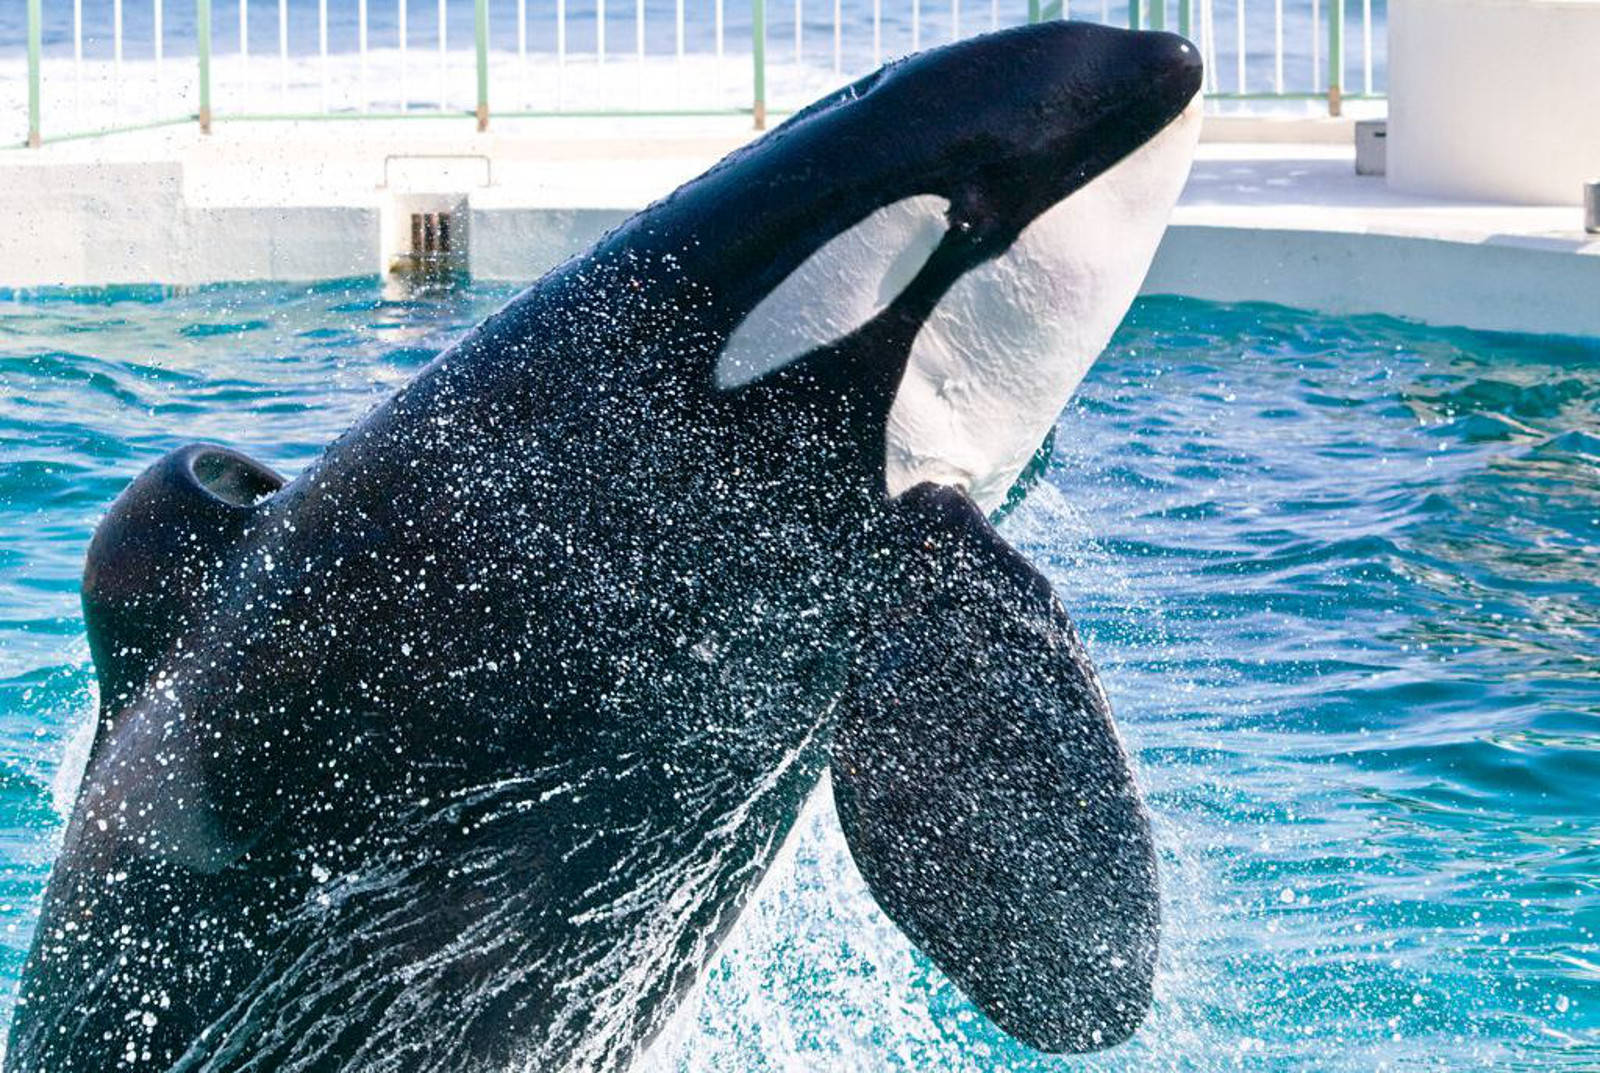 What Would Captive Orcas Tell Us If They Could Talk?